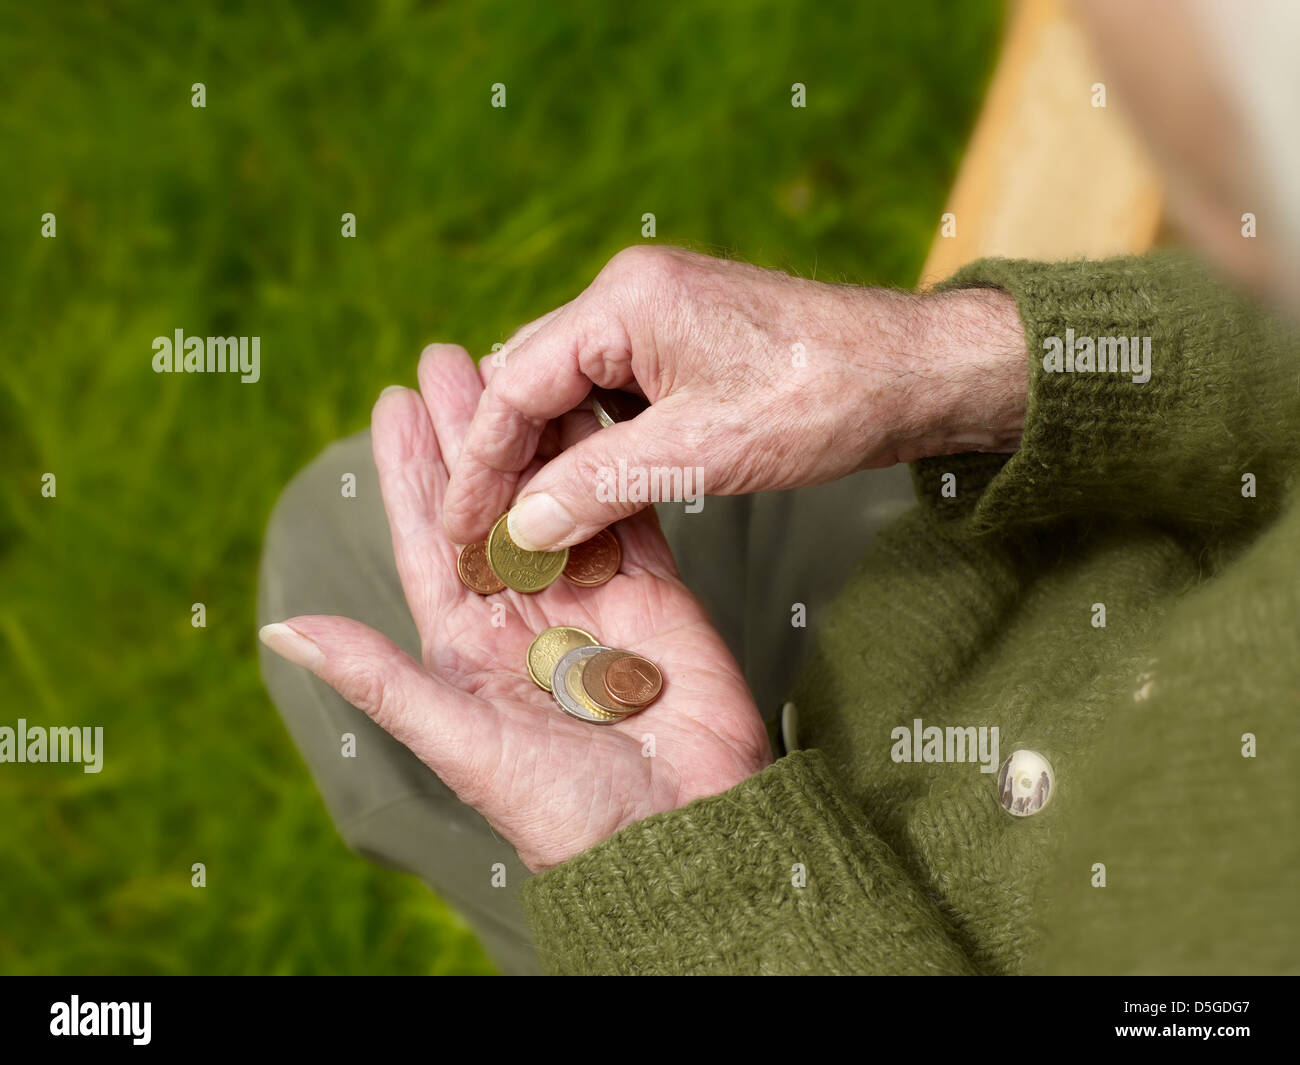 hands of a senior counting less money, poverty - Stock Image